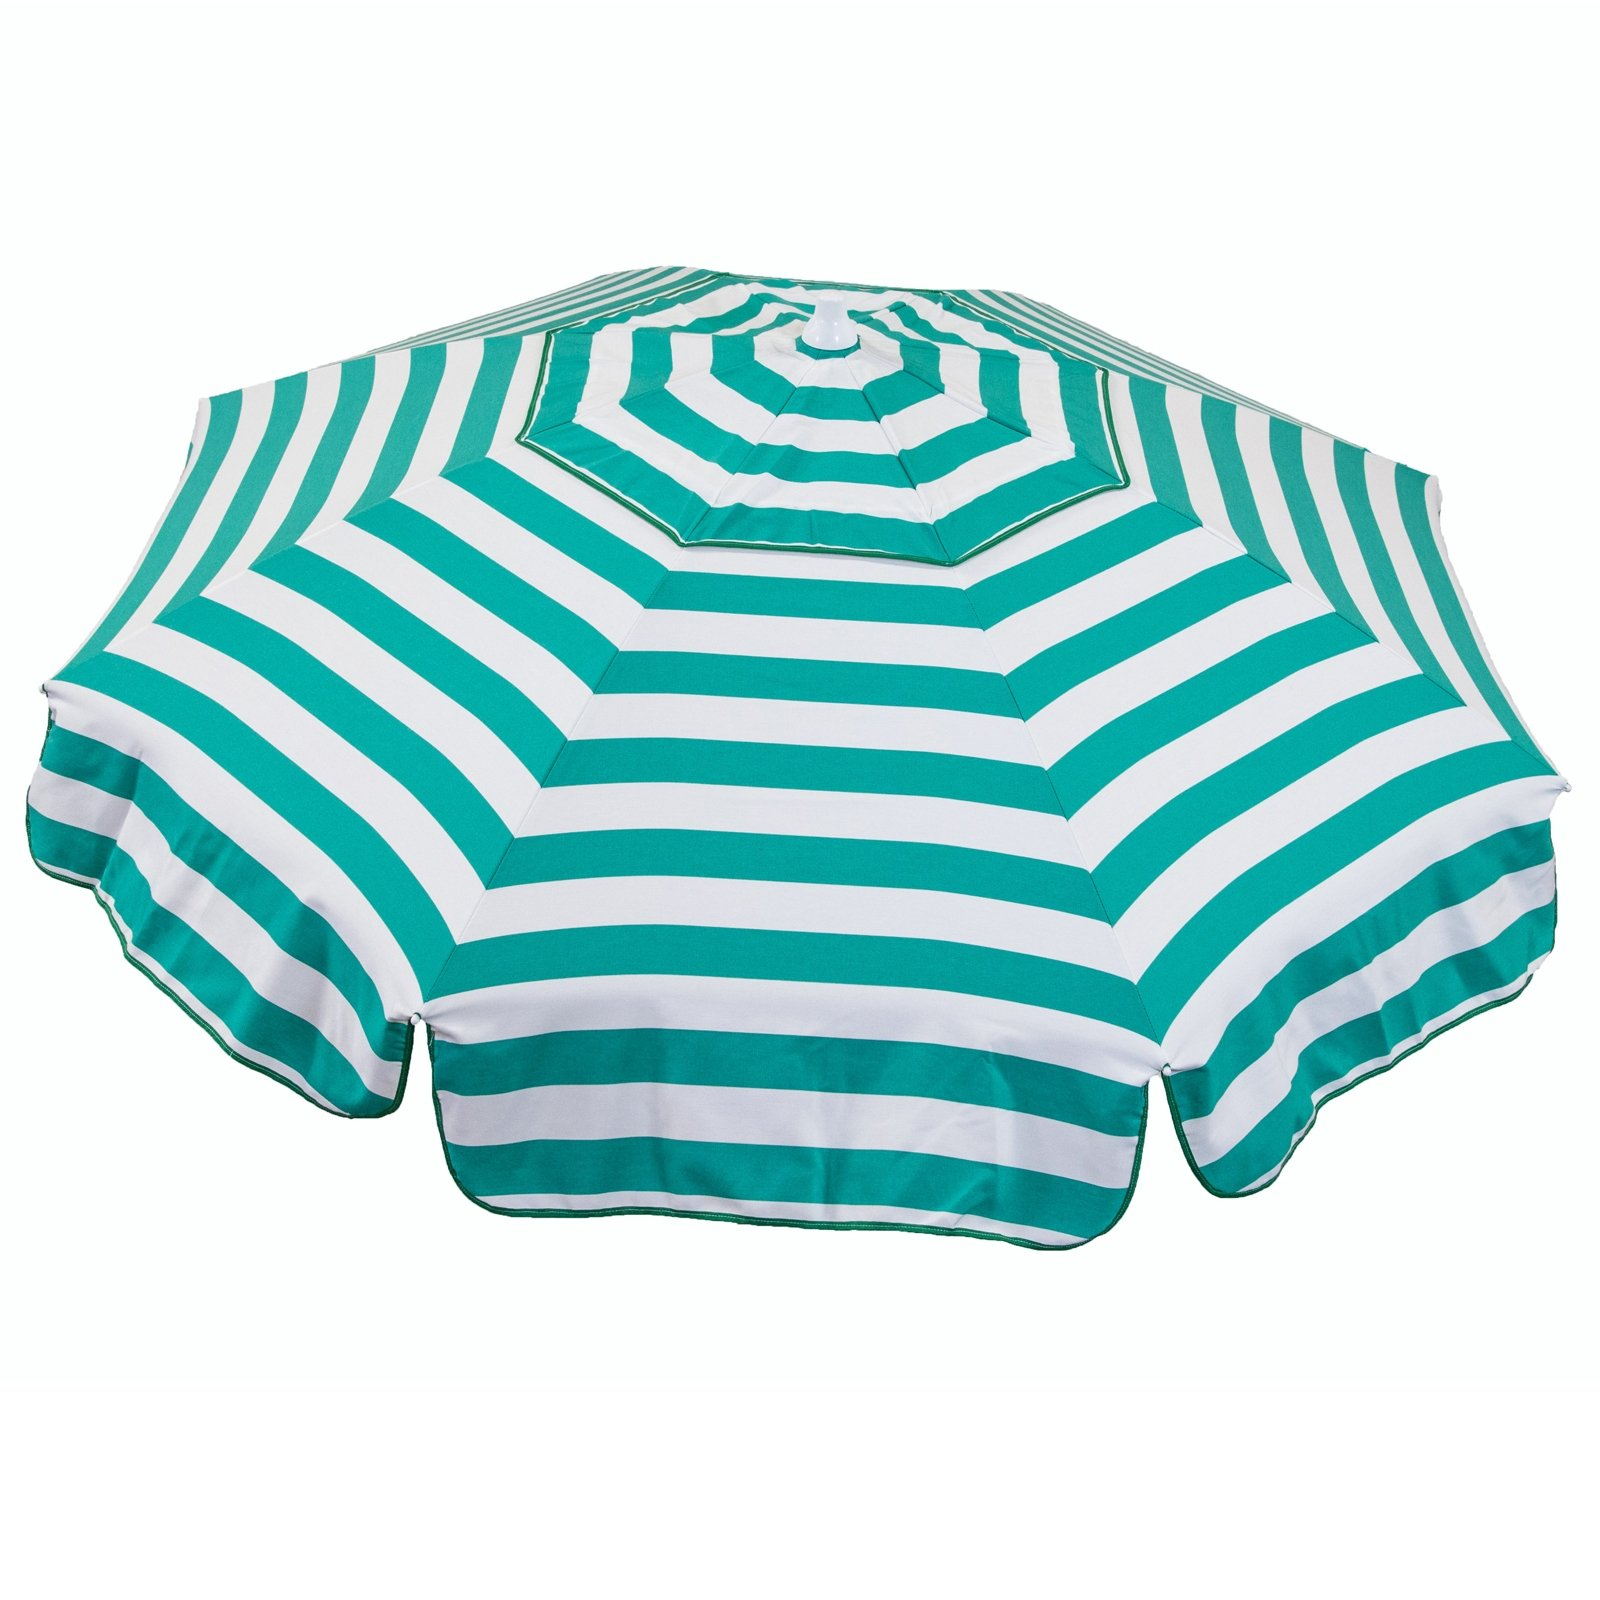 Italian 6 foot Push/Tilt Umbrella Acrylic Stripes Jade Green and White - Beach Pole